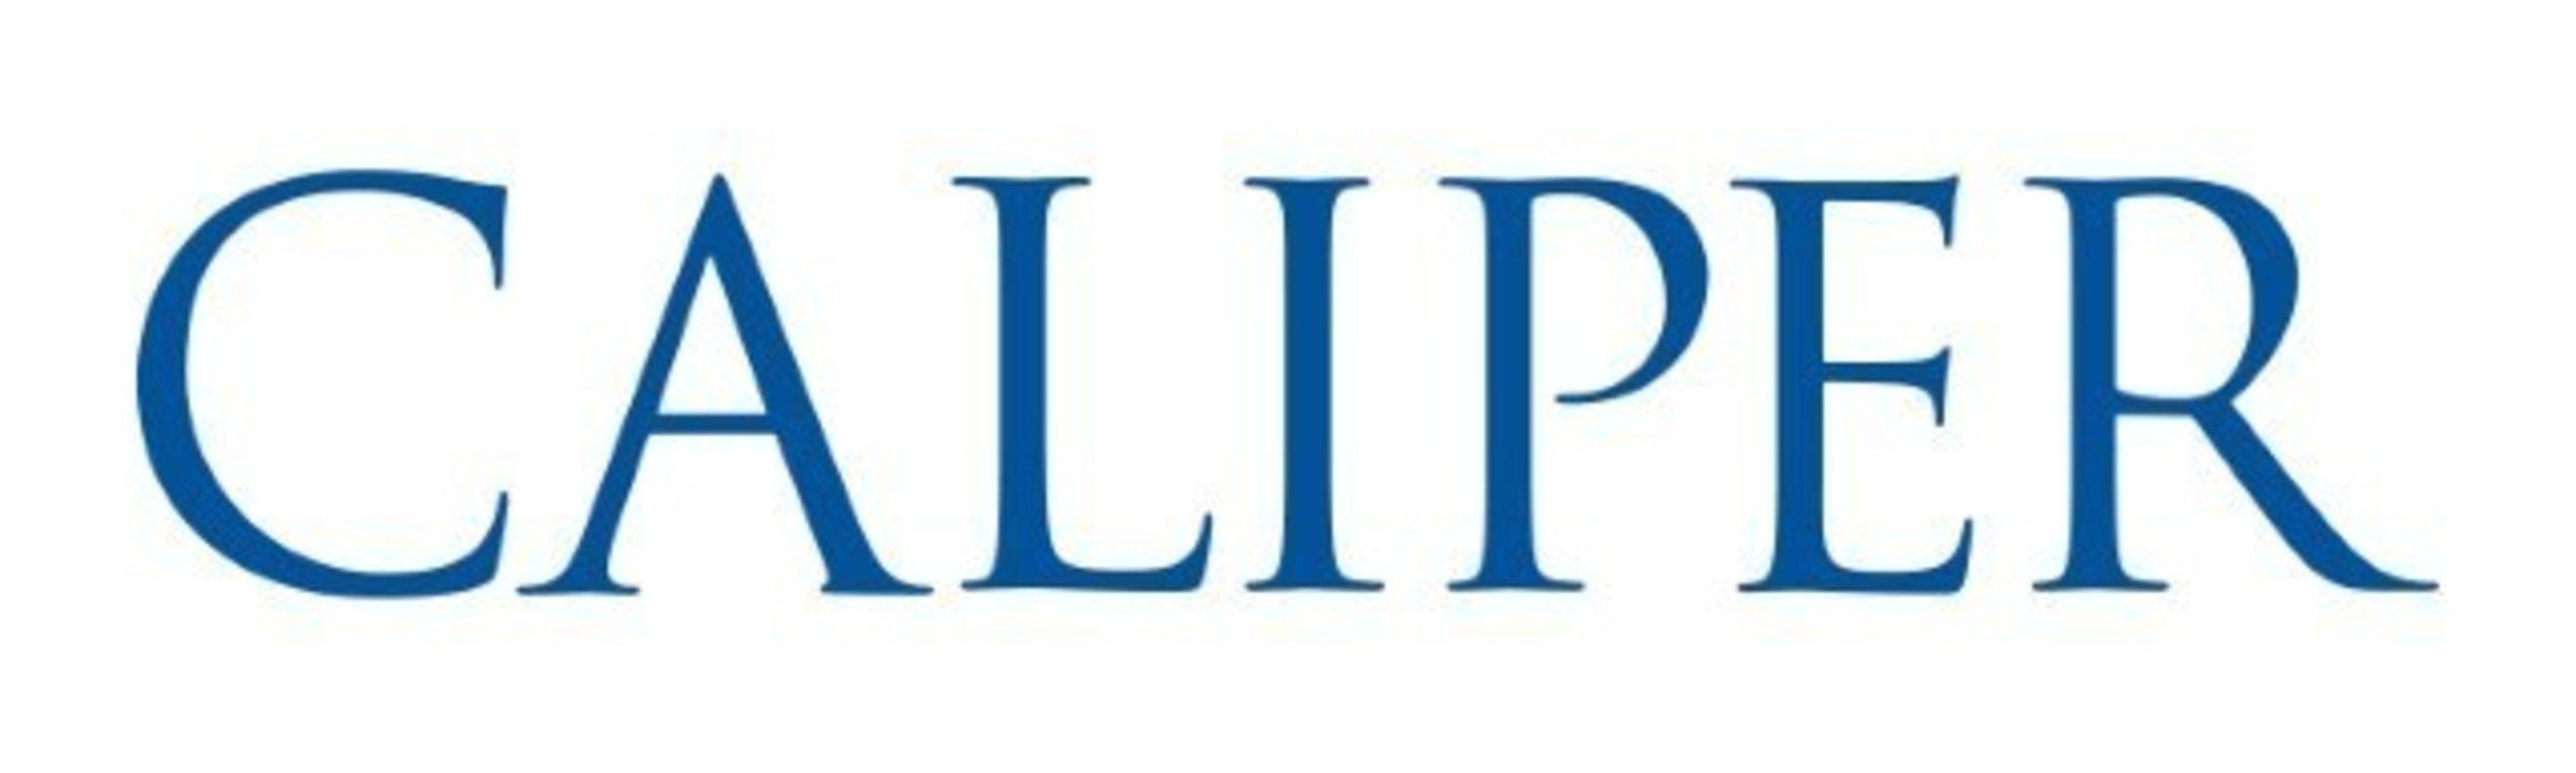 Caliper's Women Leaders Research Study Examines How Personality Traits Overcome Barrier and